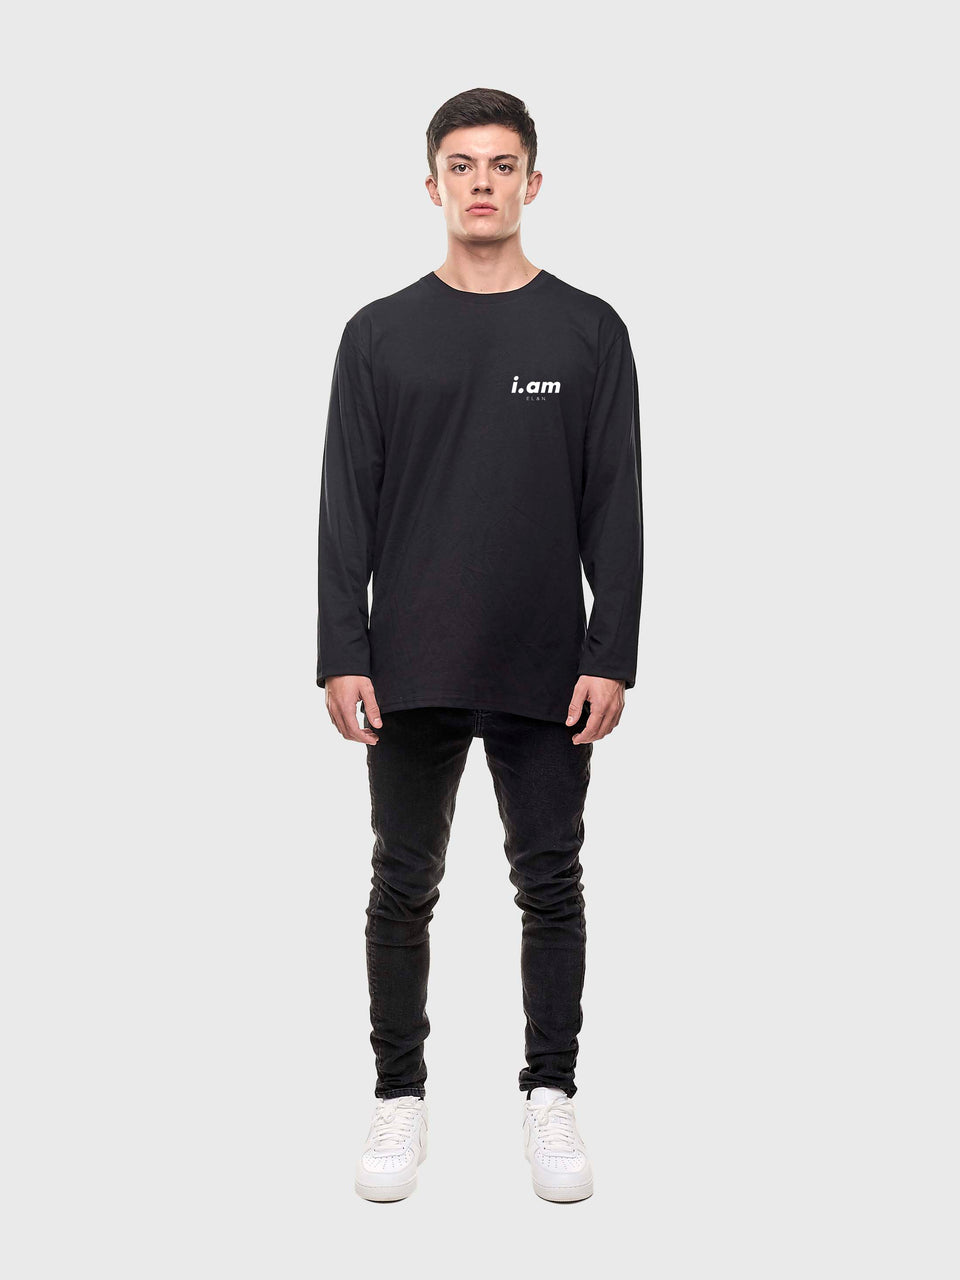 The connect - Black - Unisex long sleeve T